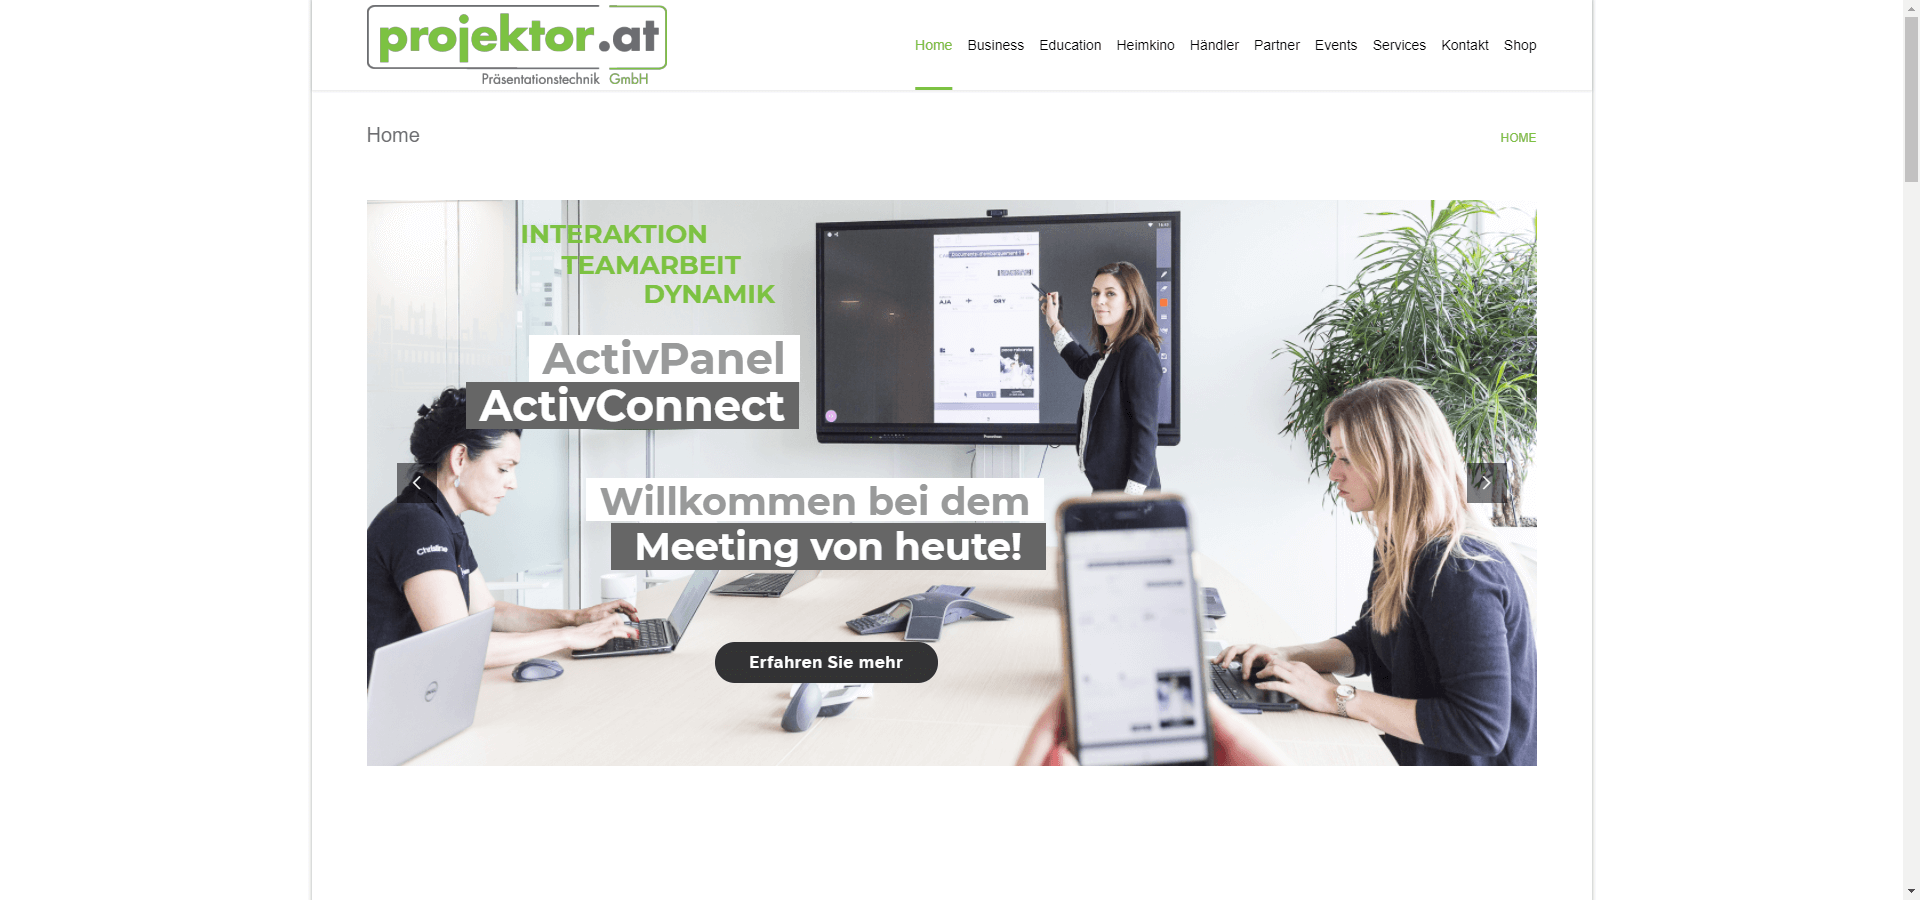 Consulting by Tridentconsulting: Projektor.at